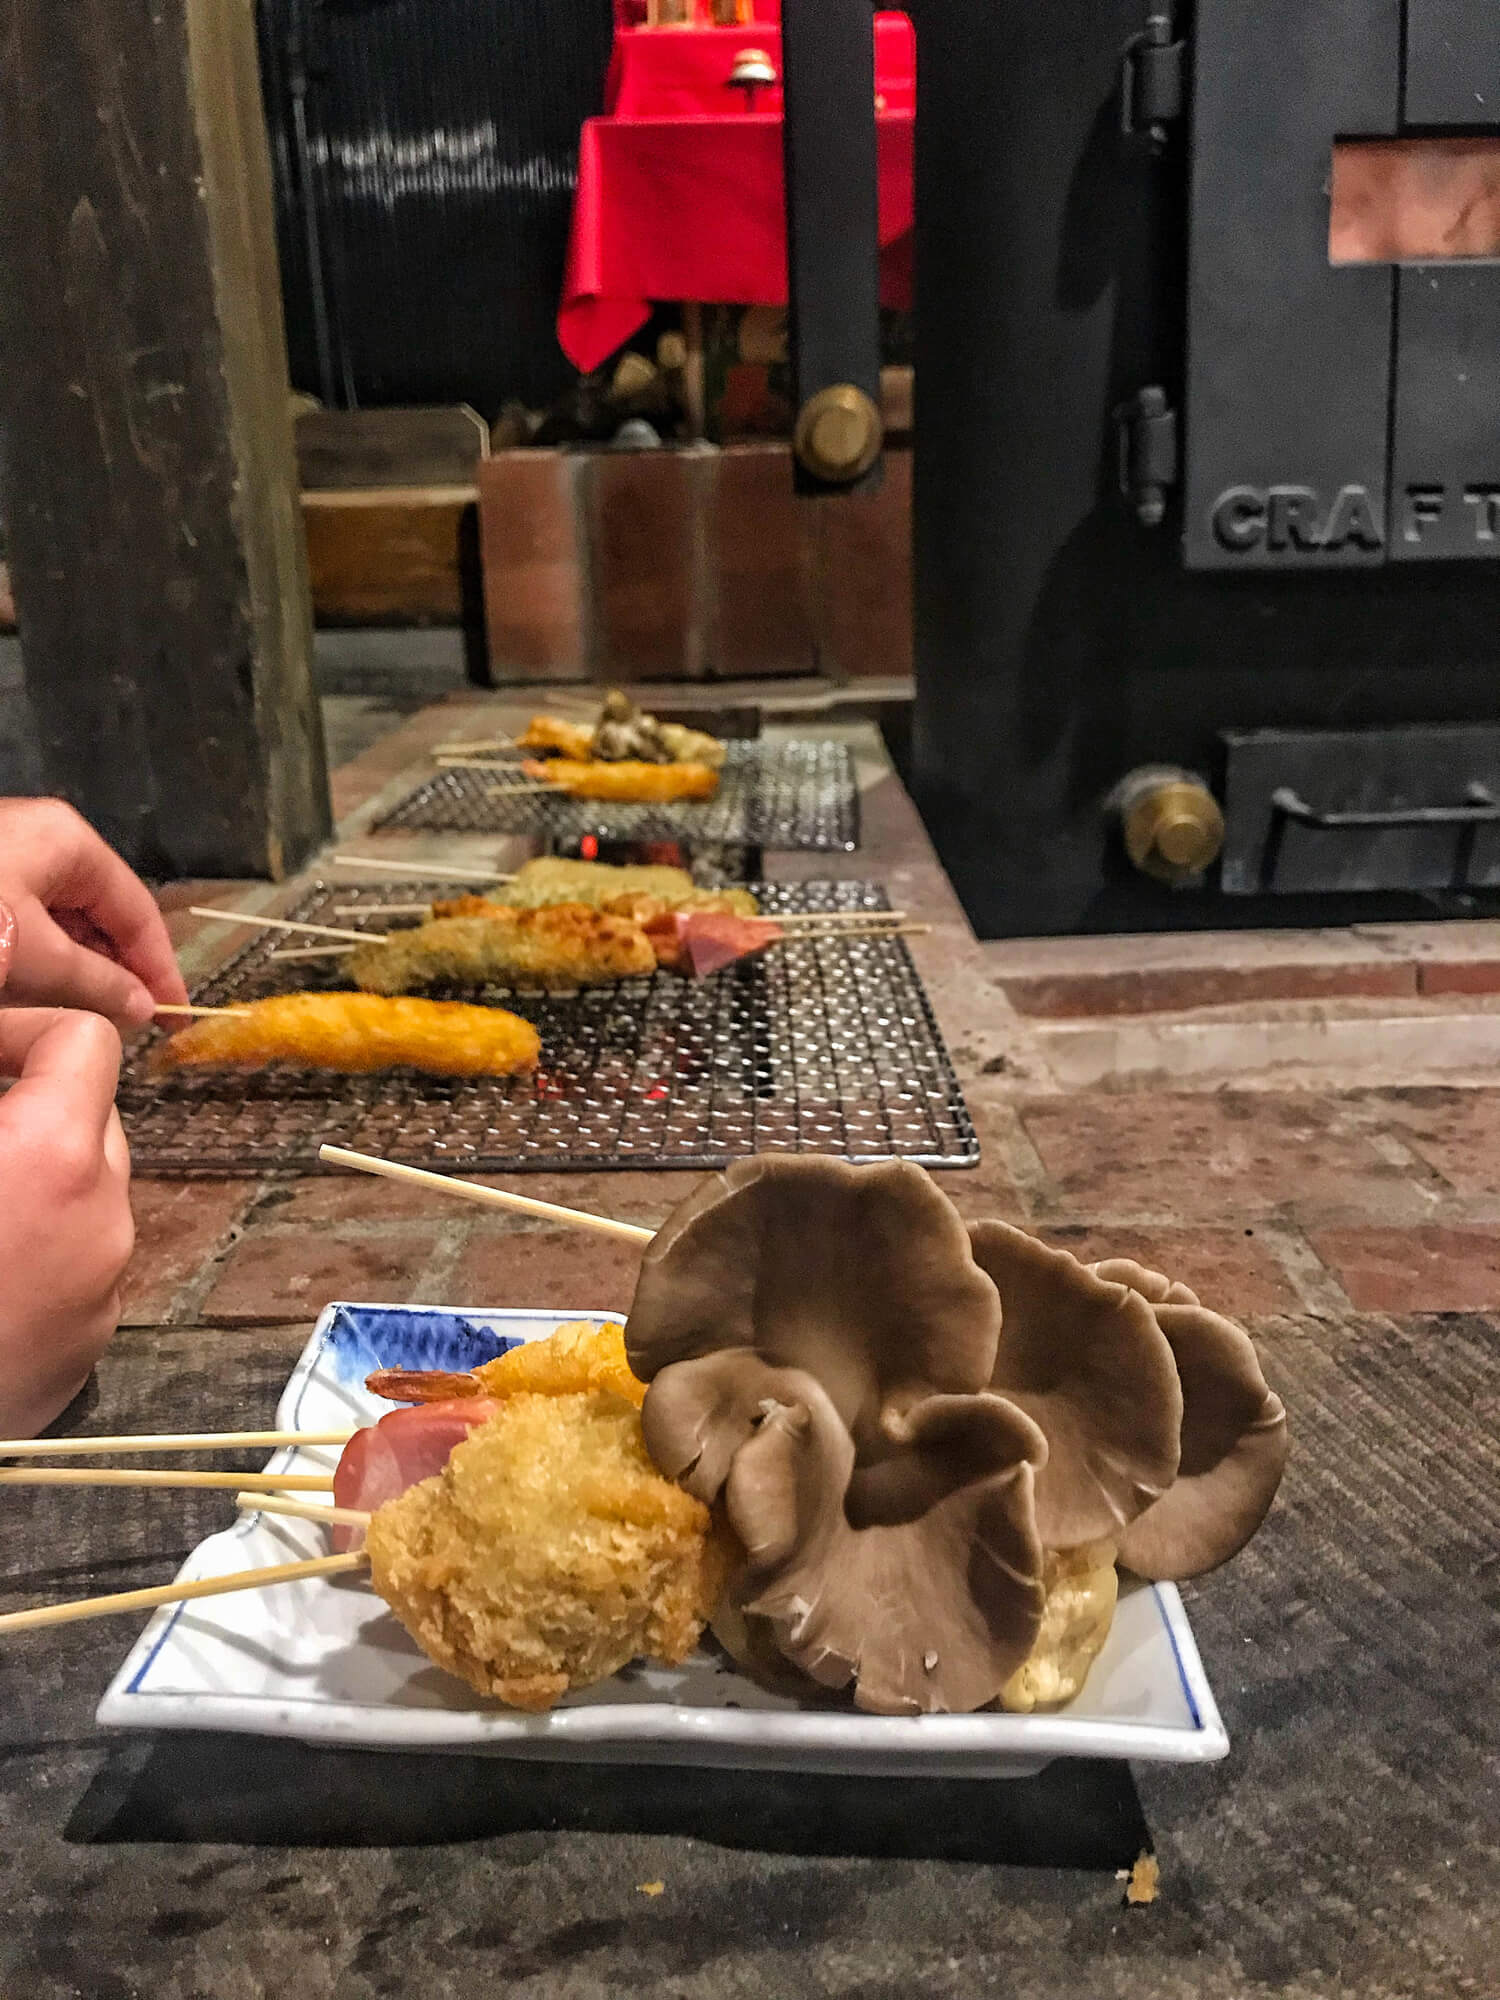 JAPANESE SKEWERS COOKED ON HOT COALS